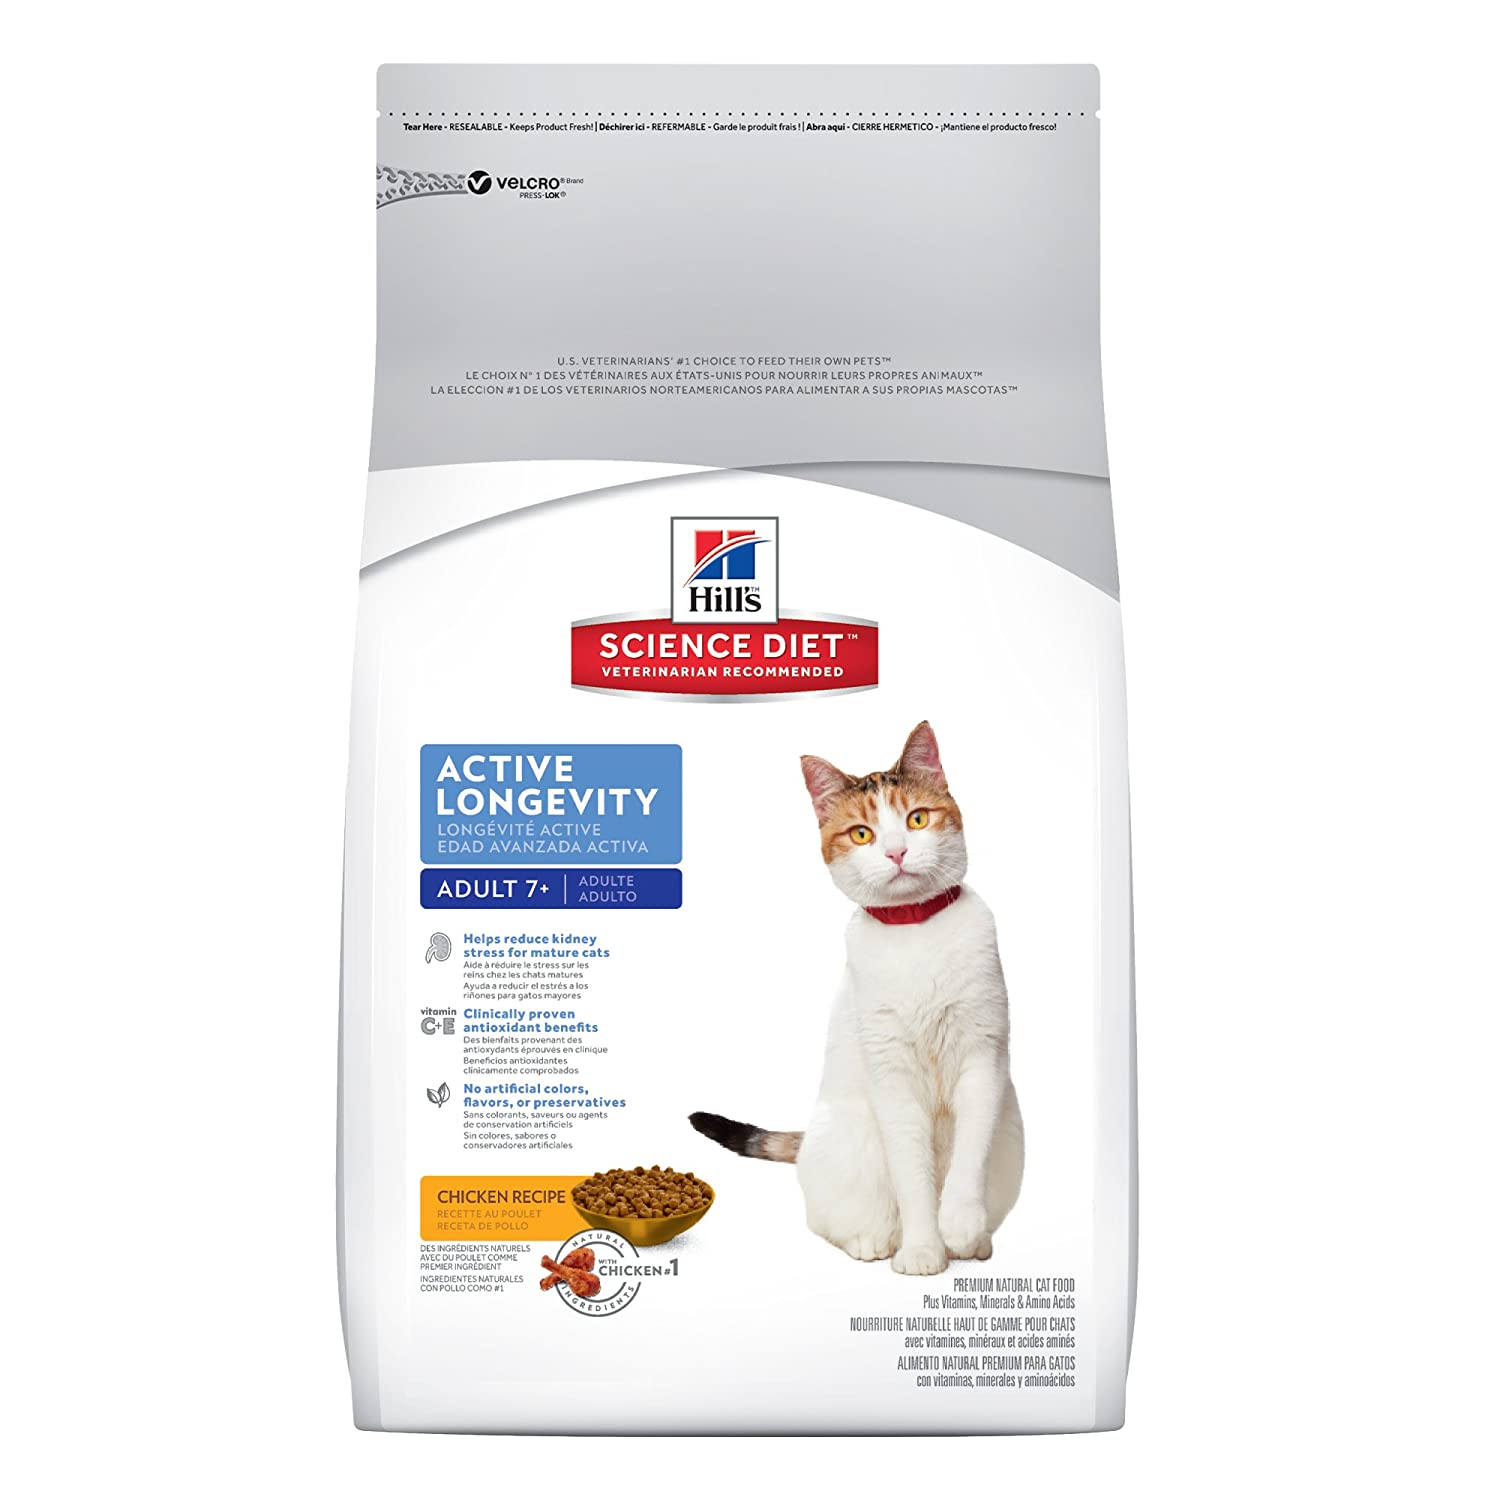 Amazon.com : Hills Science Diet Mature Adult Active Longevity Original Dry Cat Food, 17.5-Pound Bag : Dry Pet Food : Pet Supplies